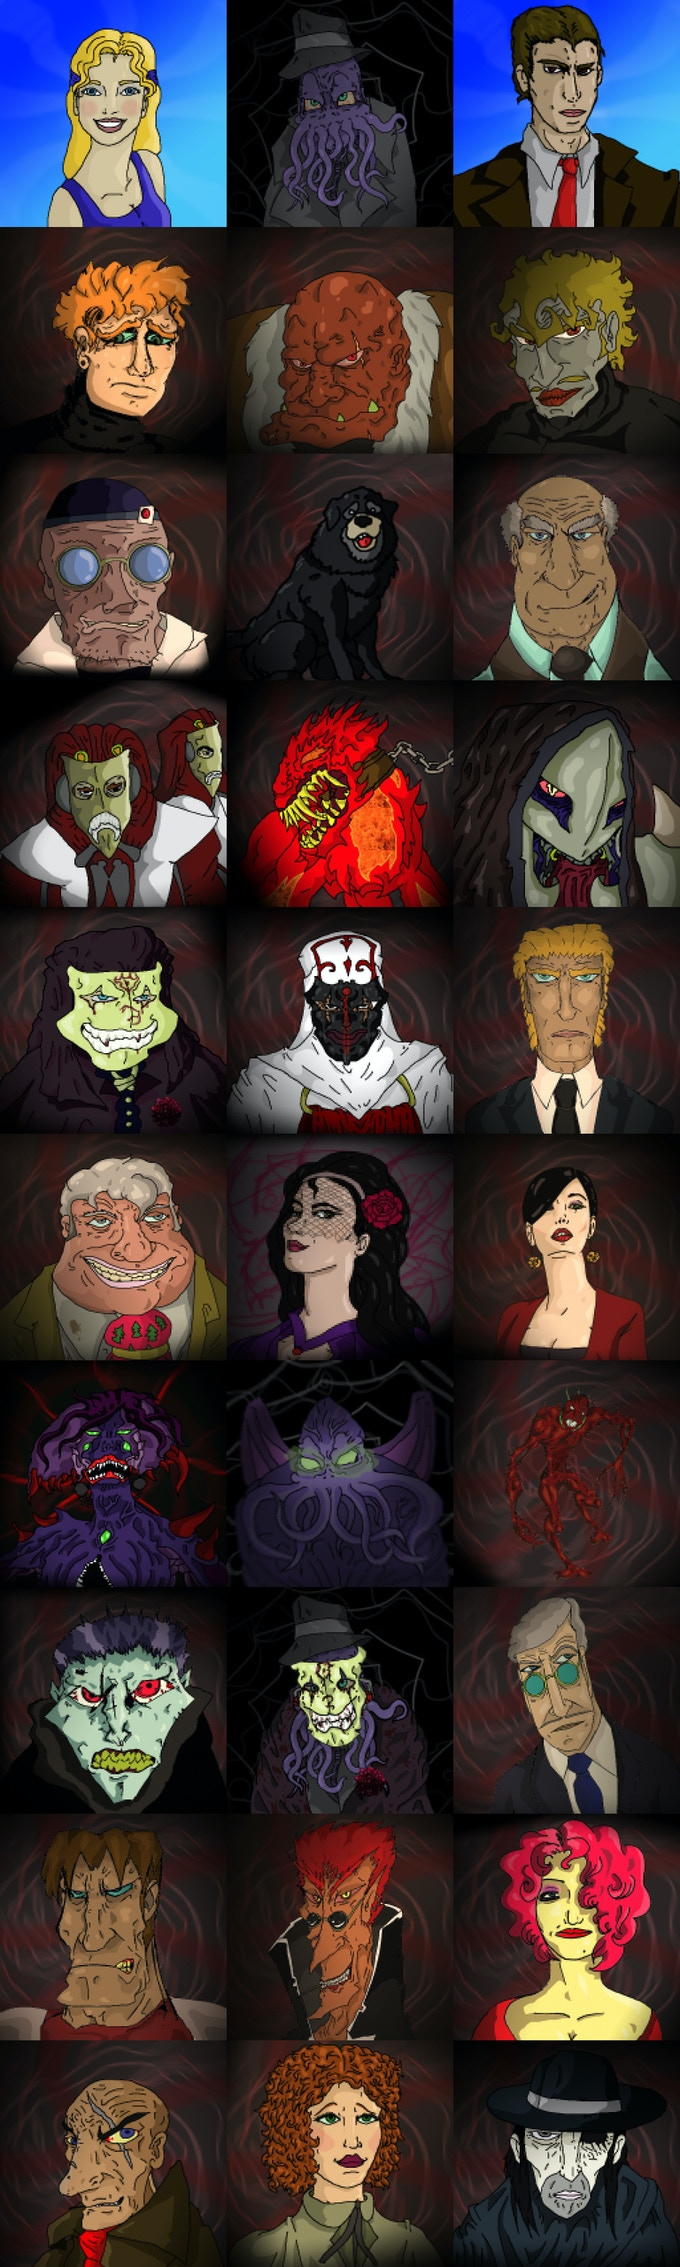 Some portraits from 'A Matter of Caos: Complete Edition'